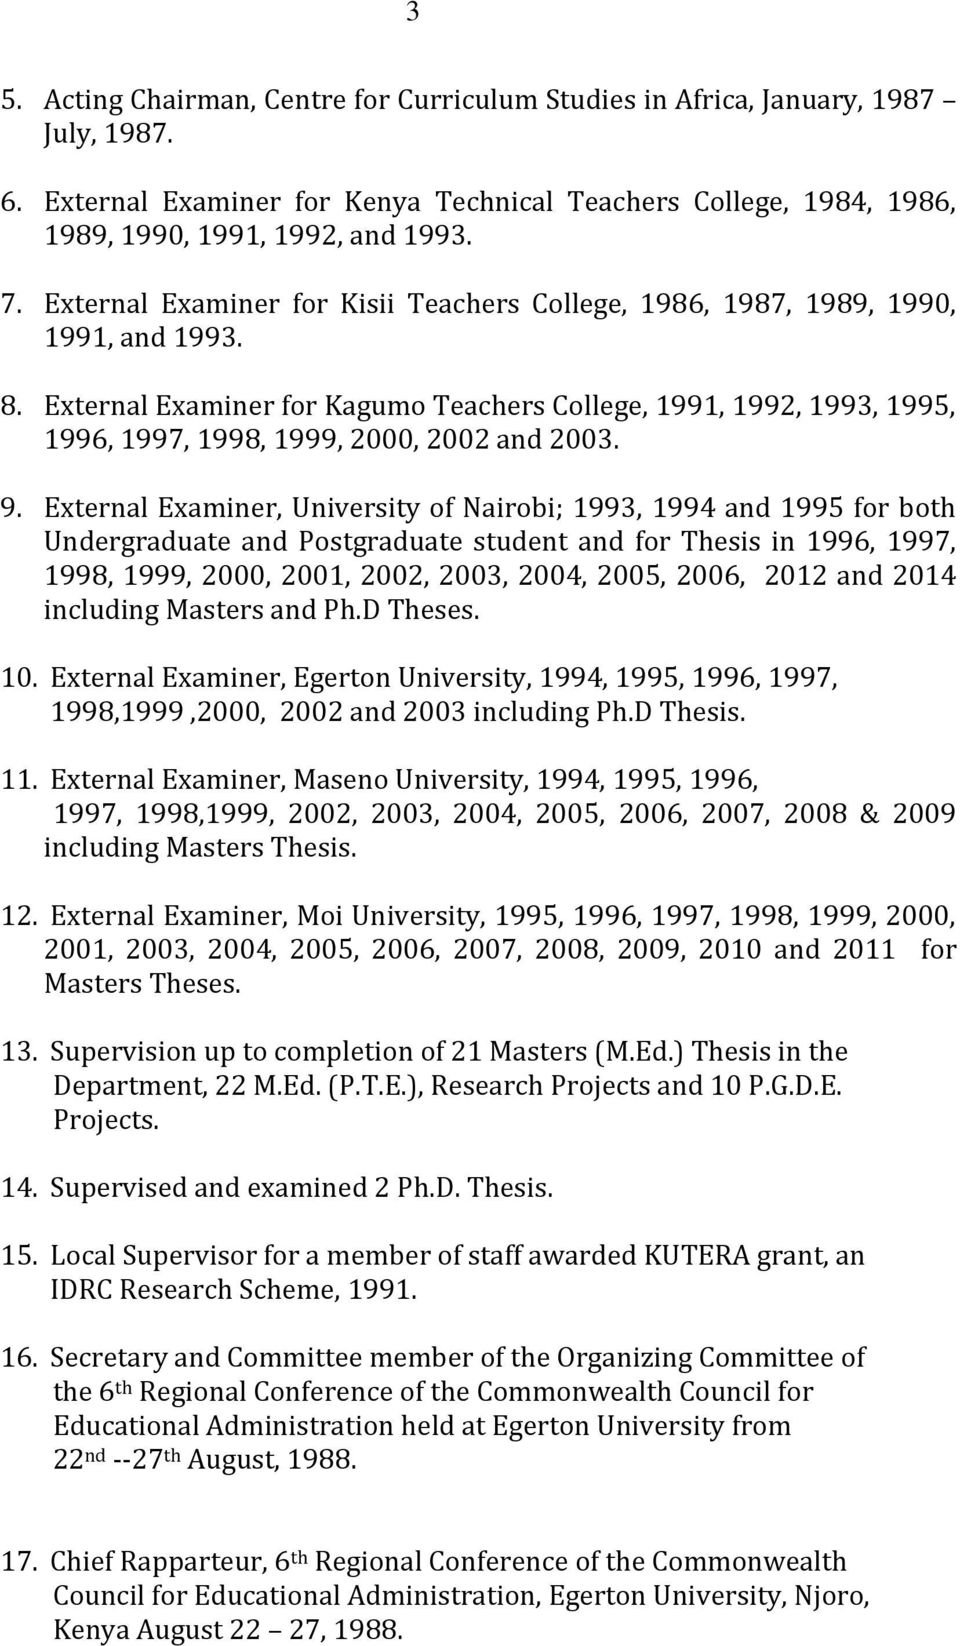 External Examiner for Kagumo Teachers College, 1991, 1992, 1993, 1995, 1996, 1997, 1998, 1999, 2000, 2002 and 2003. 9.